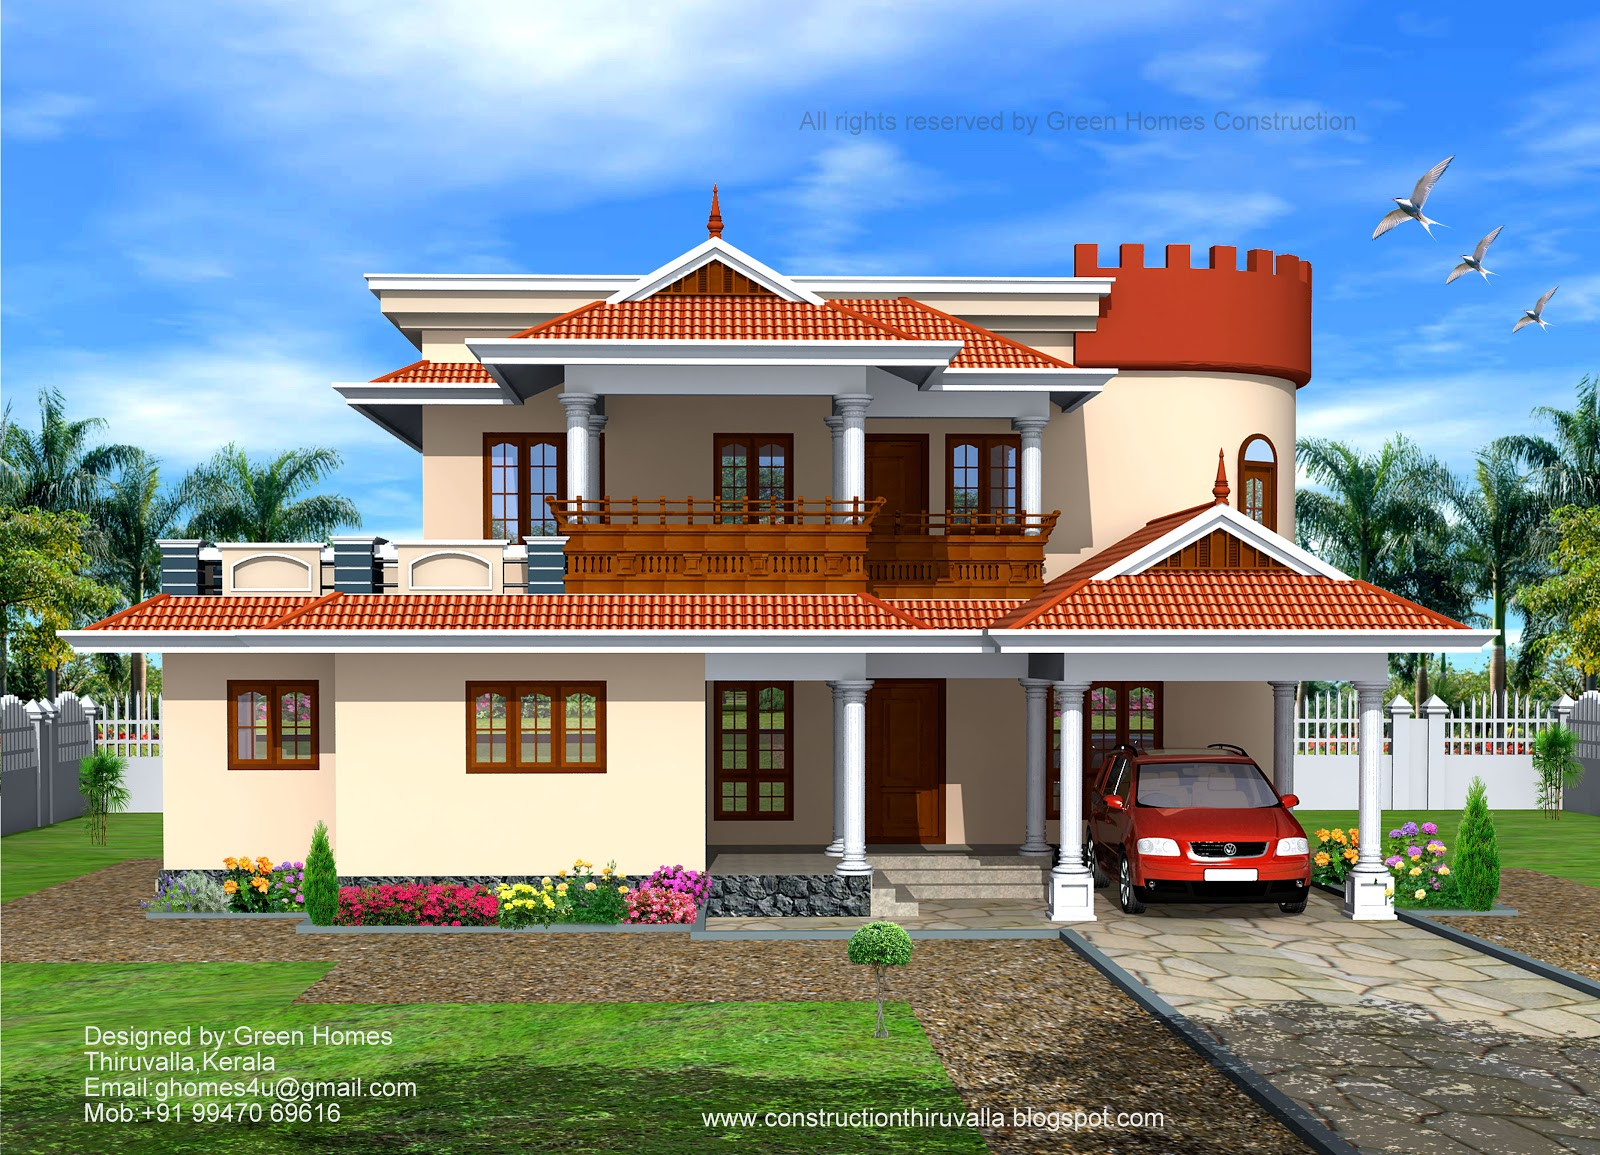 Green homes october 2012 for Indian simple house design